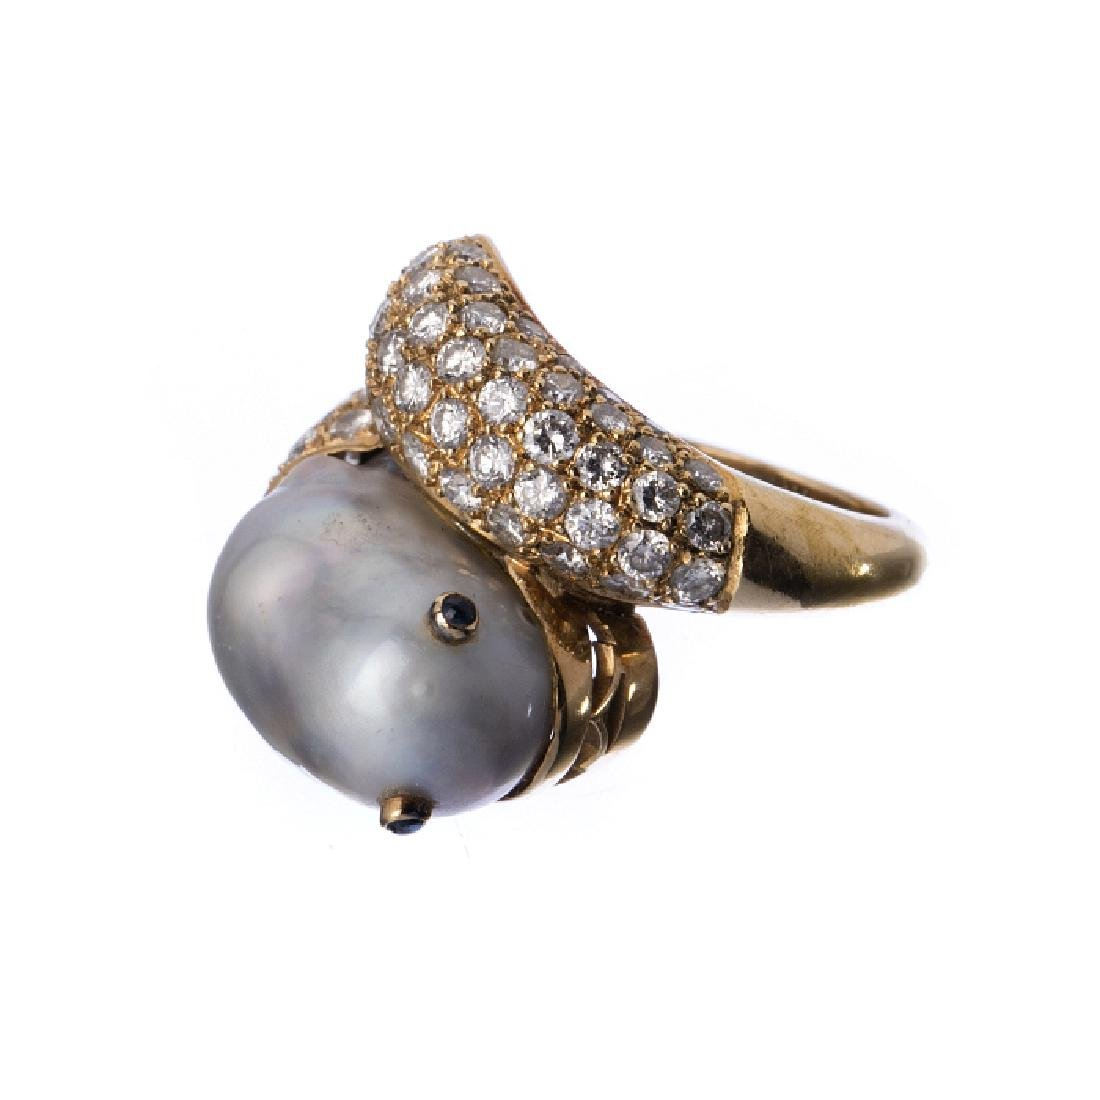 19,2k gold ring with diamonds and a pearl